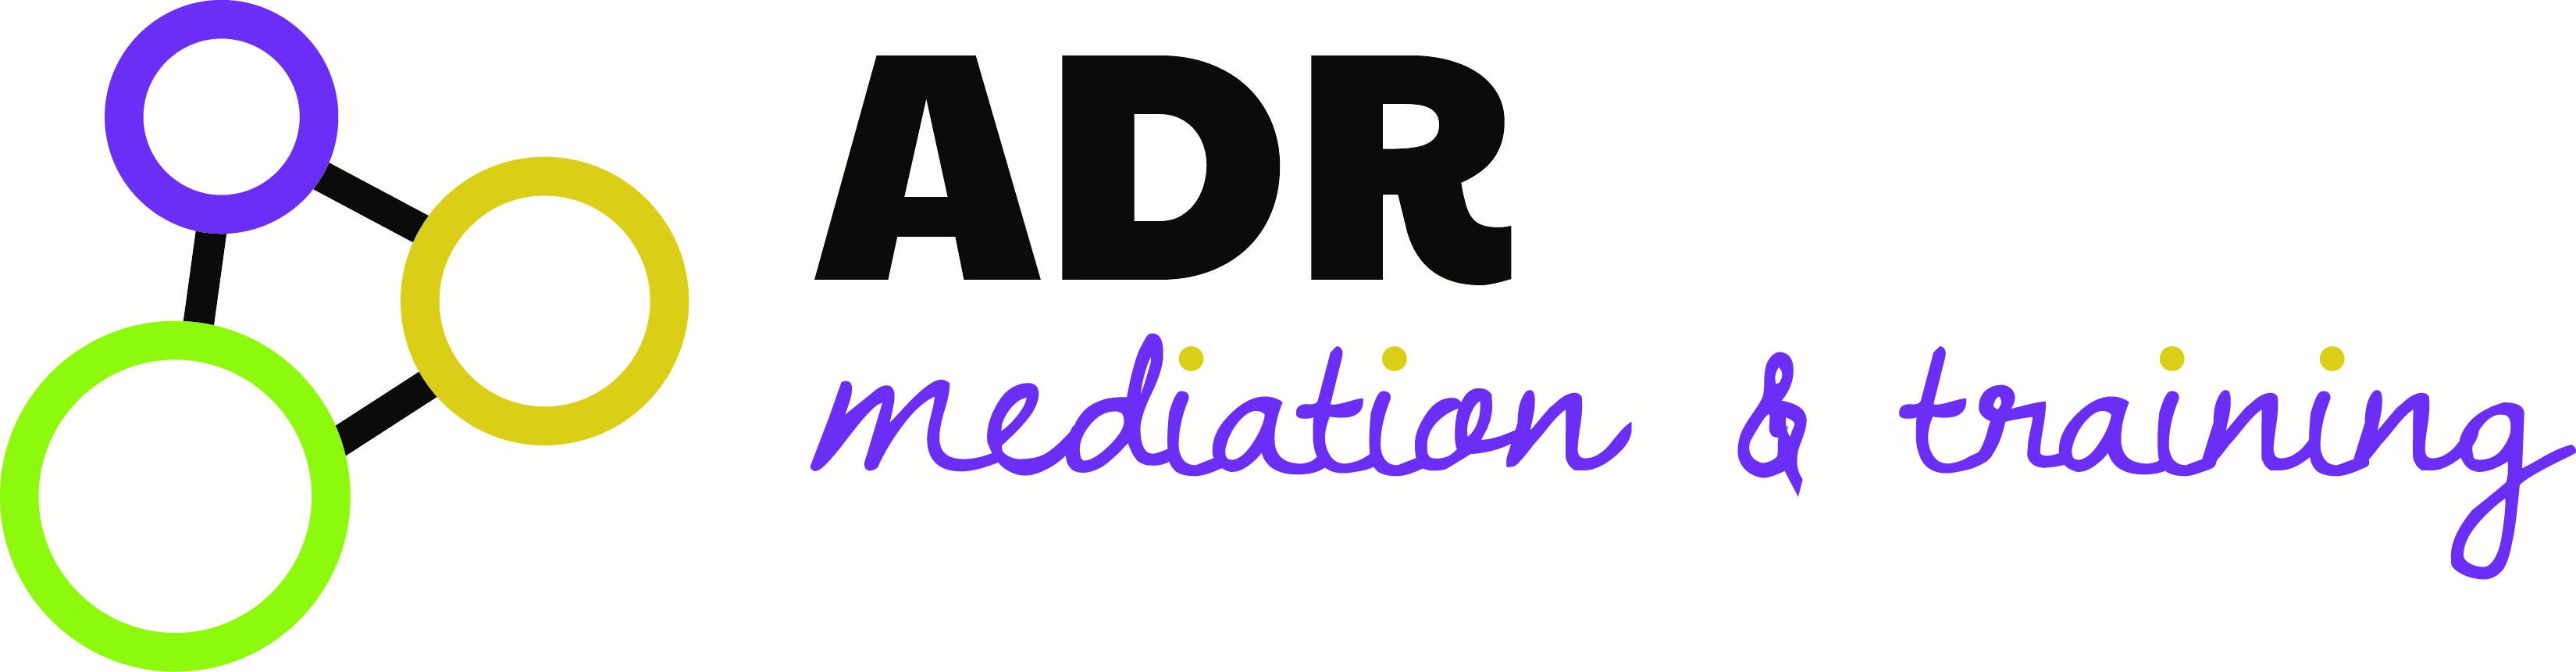 ADR Mediation is seeking passionate individuals for our Volunteer Advisory Panel